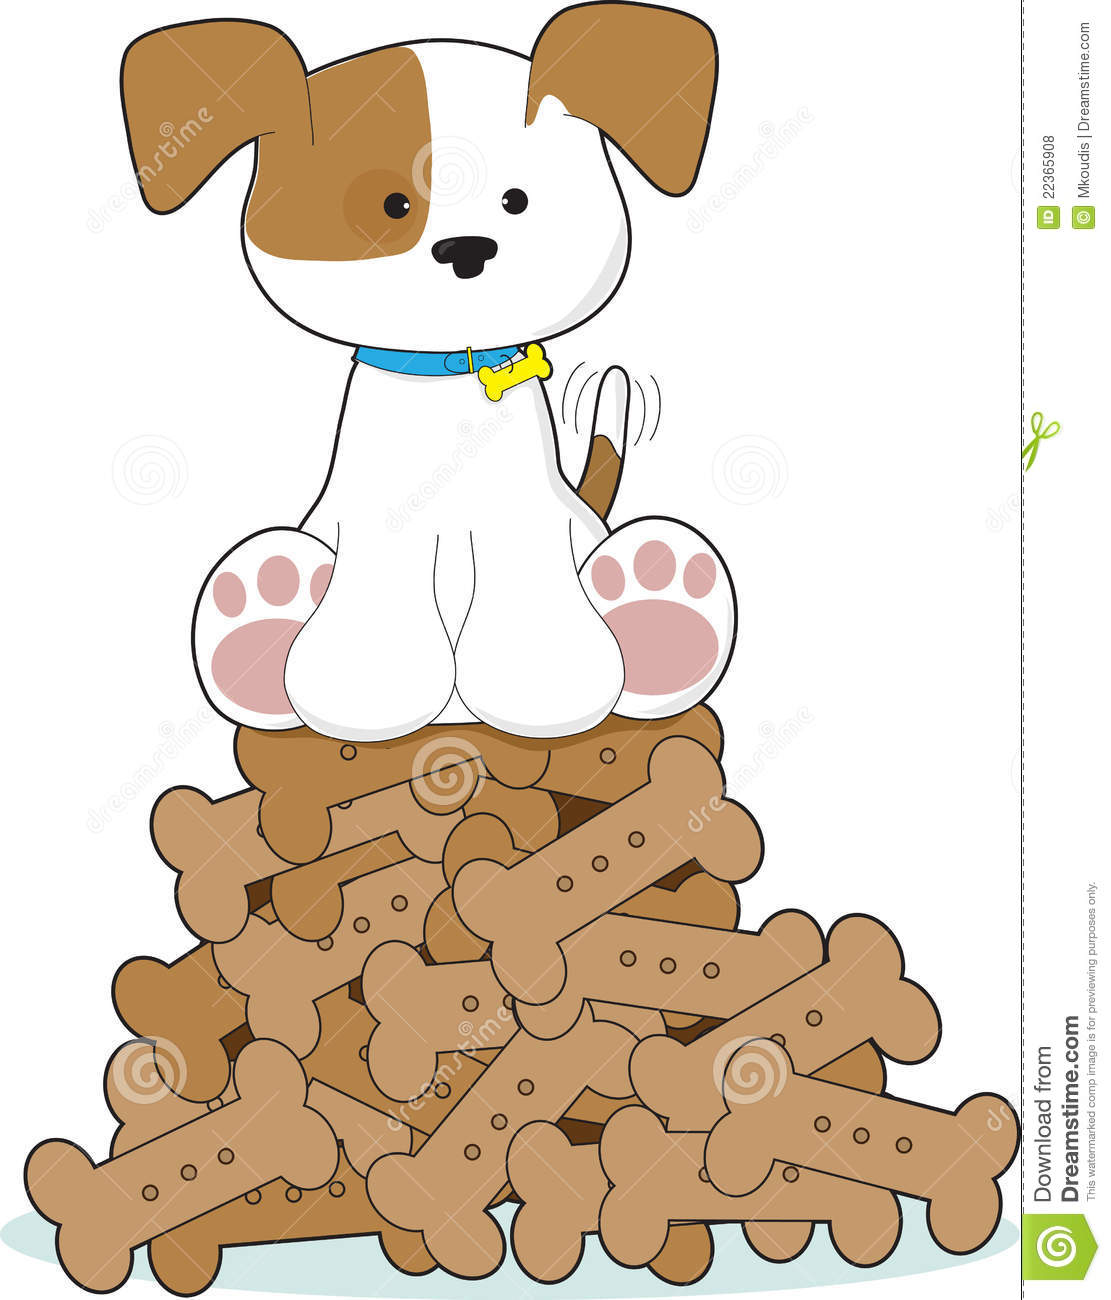 Pile of dog bones clipart.